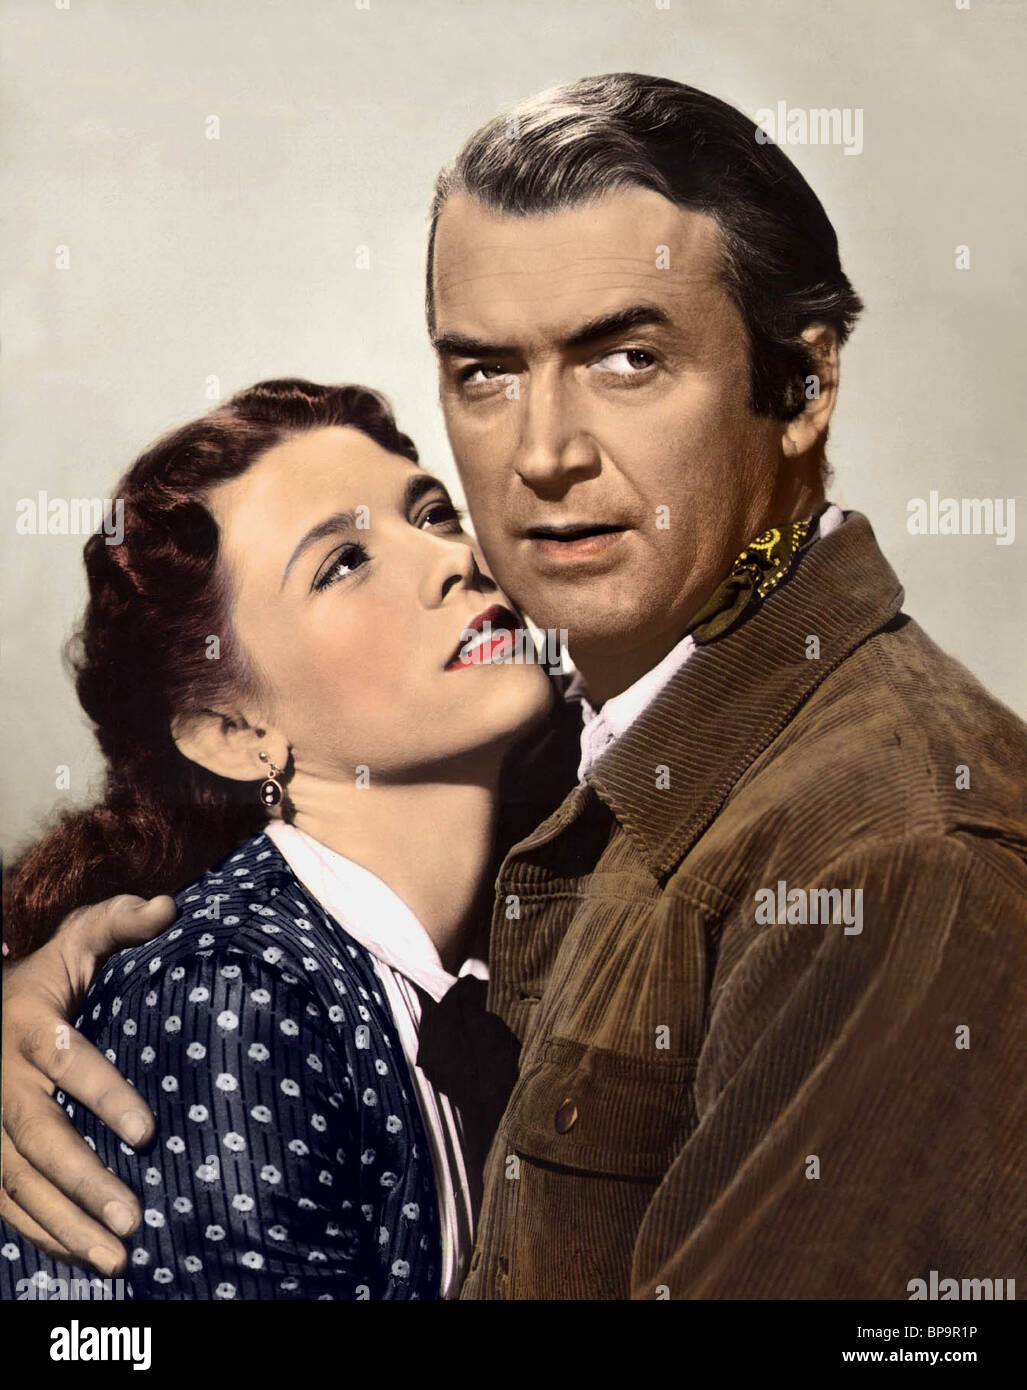 CATHY O'DONNELL, JAMES STEWART, THE MAN FROM LARAMIE, 1955 - Stock Image